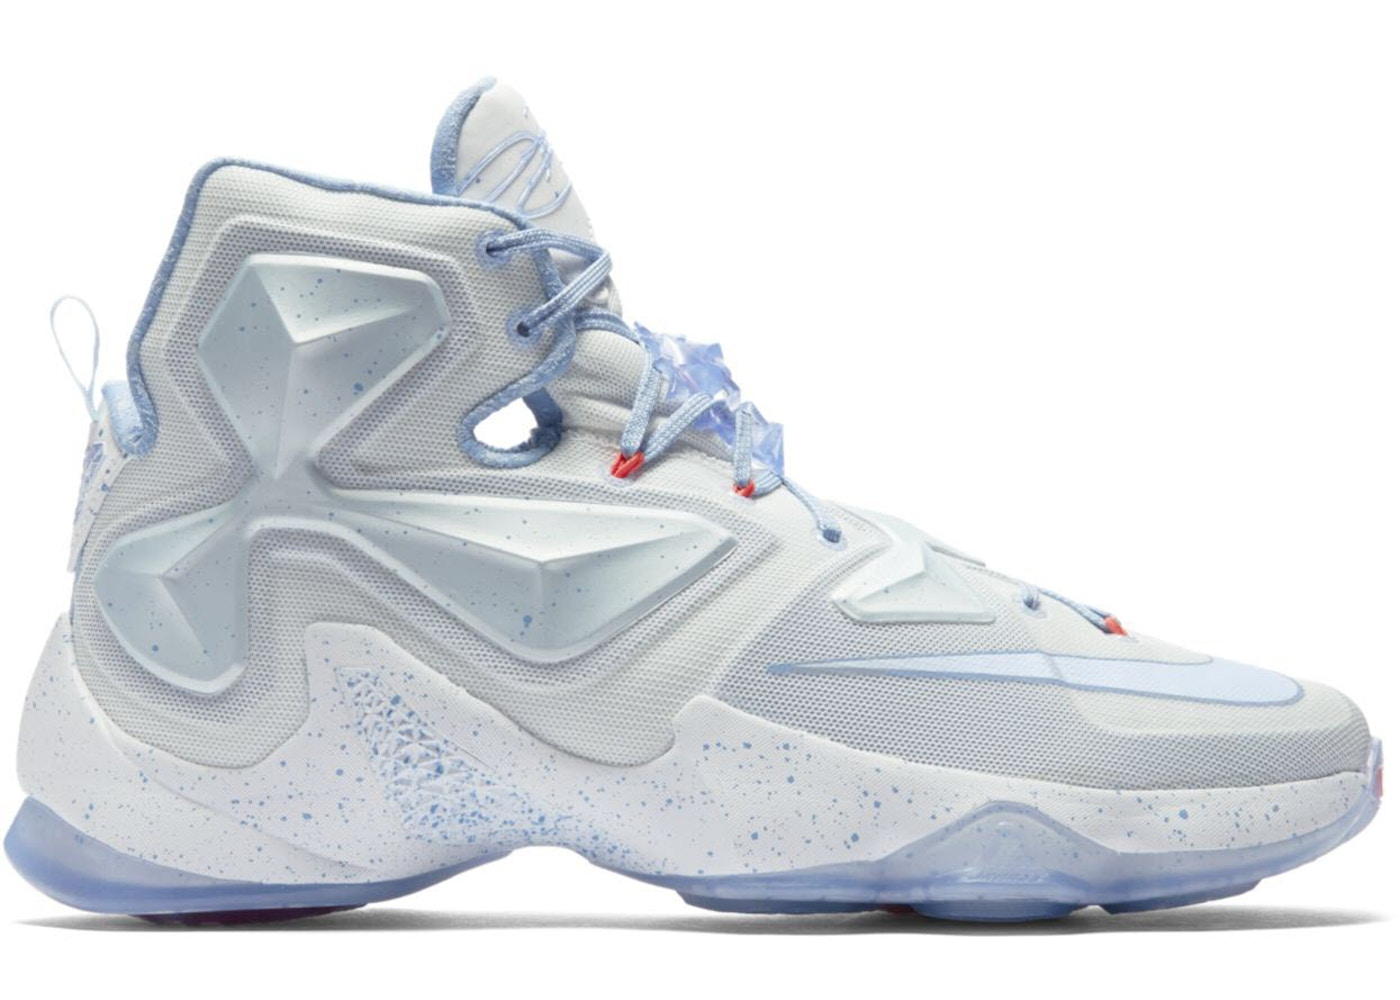 separation shoes 8ebc5 5d391 LeBron 13 Christmas - 816278-144